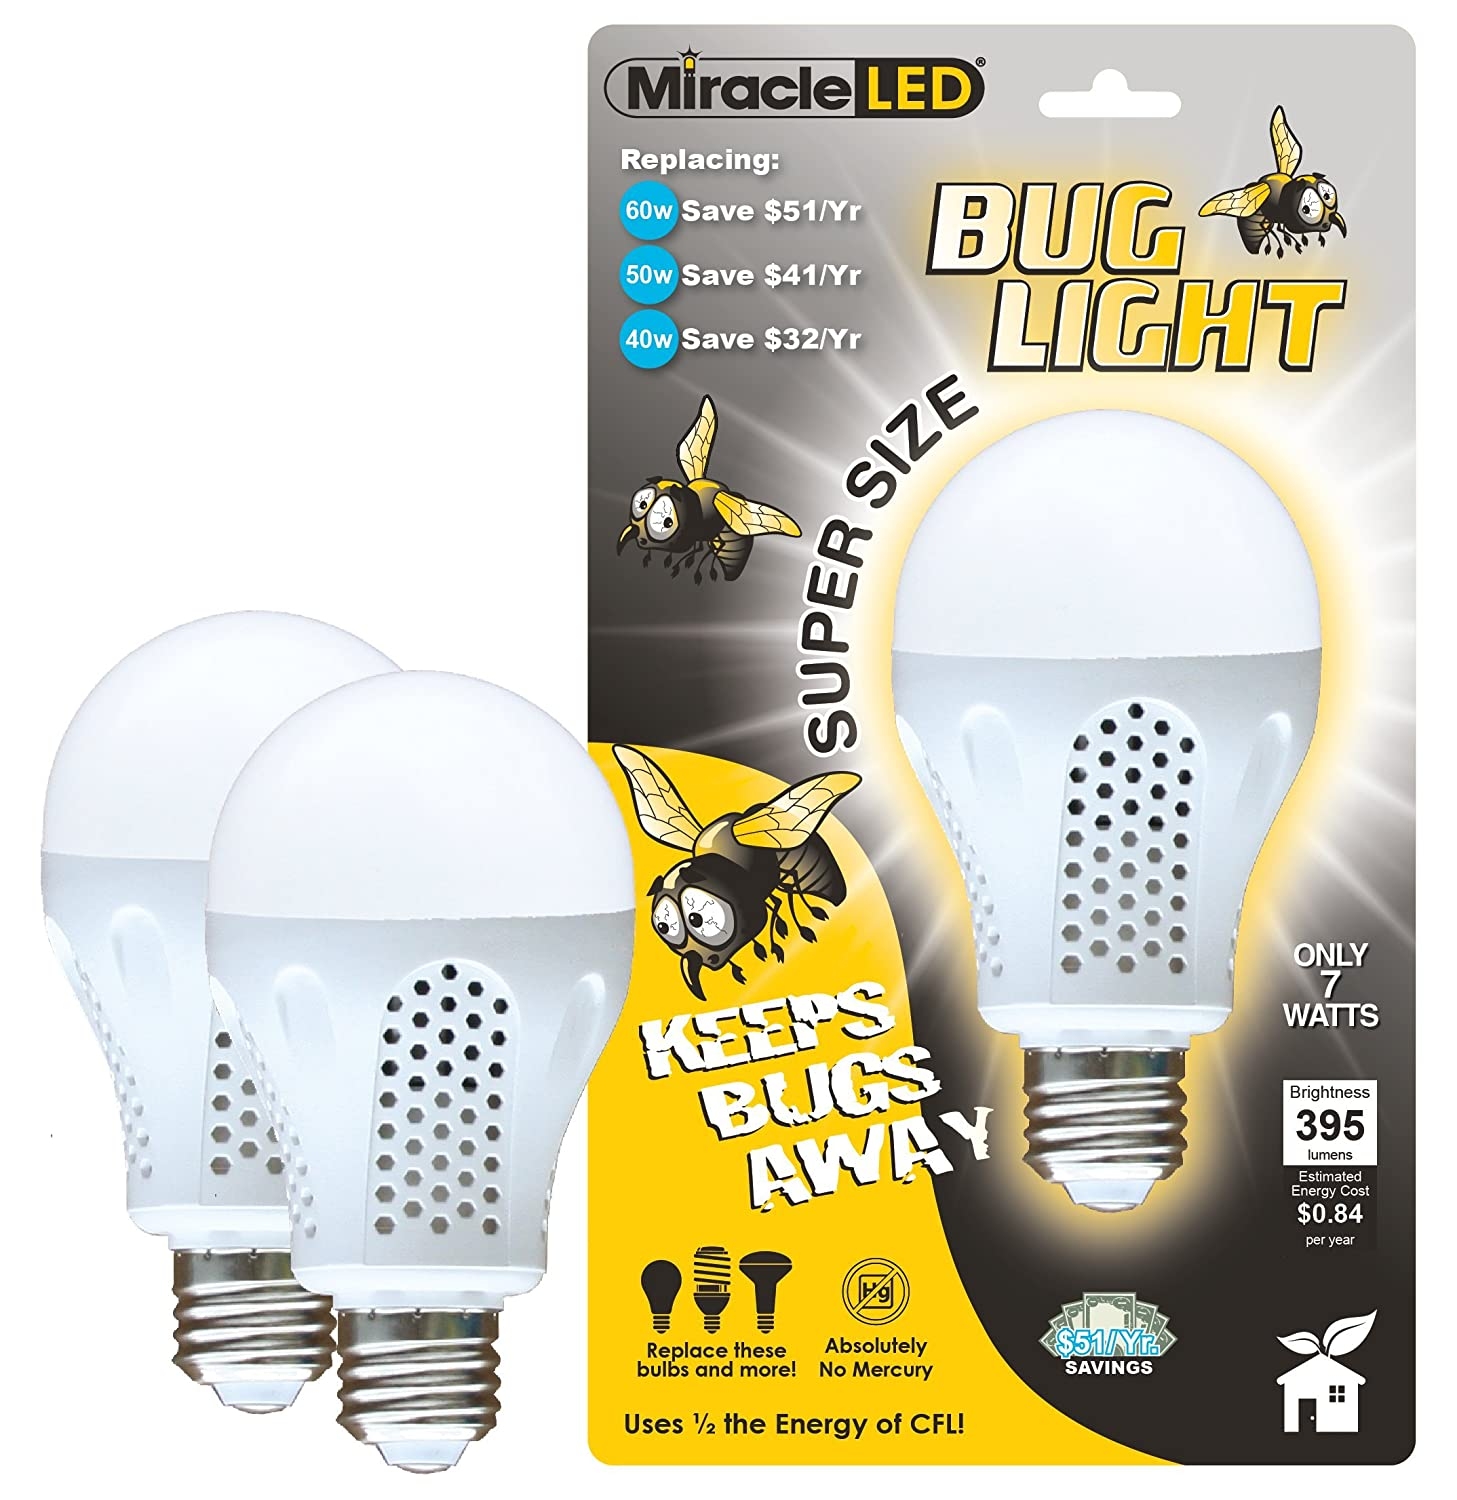 Miracle LED 604734 7 Watt Super Bug Light Bug Free Porch and Patio Light Yellow 2-Pack - - Amazon.com  sc 1 st  Amazon.com & Miracle LED 604734 7 Watt Super Bug Light Bug Free Porch and ... azcodes.com